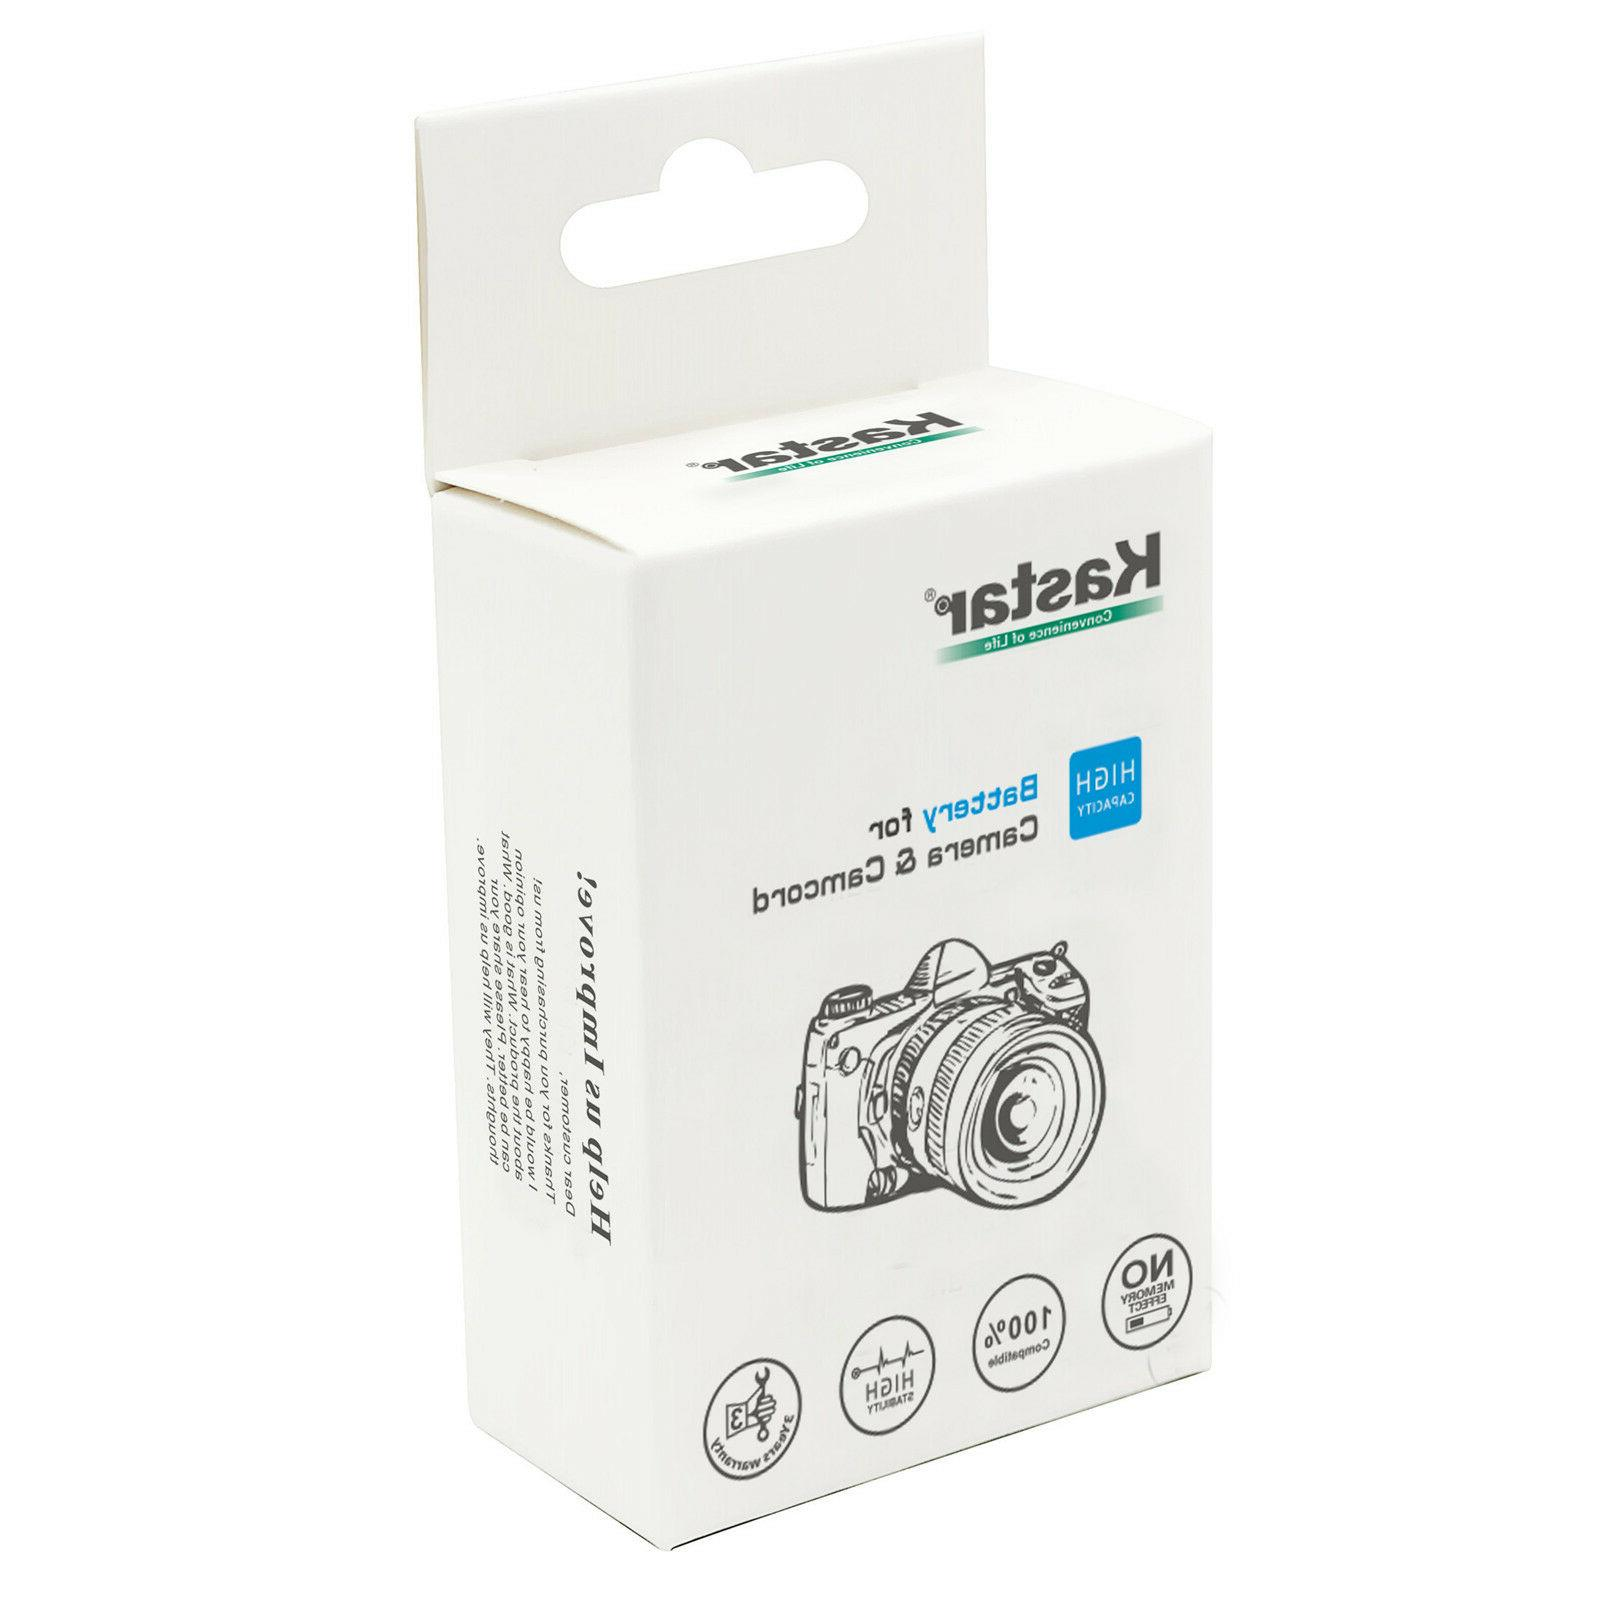 Kastar Rechargeable Battery for D750